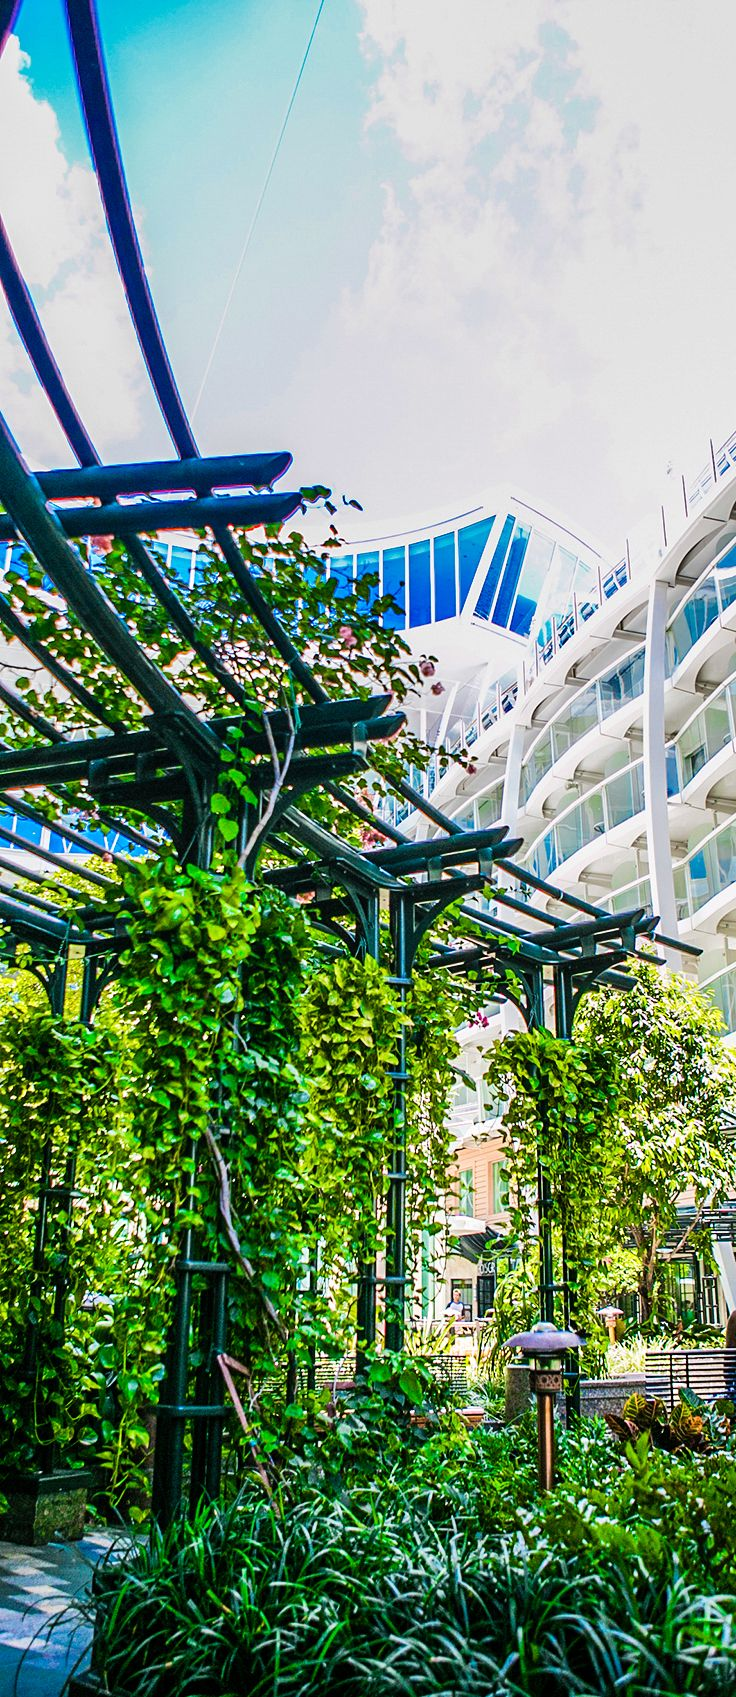 Bringing the outdoors in. Oasis of the Seas is home to the first urban park onboard a ship, complete with winding pathways and canopy trees.